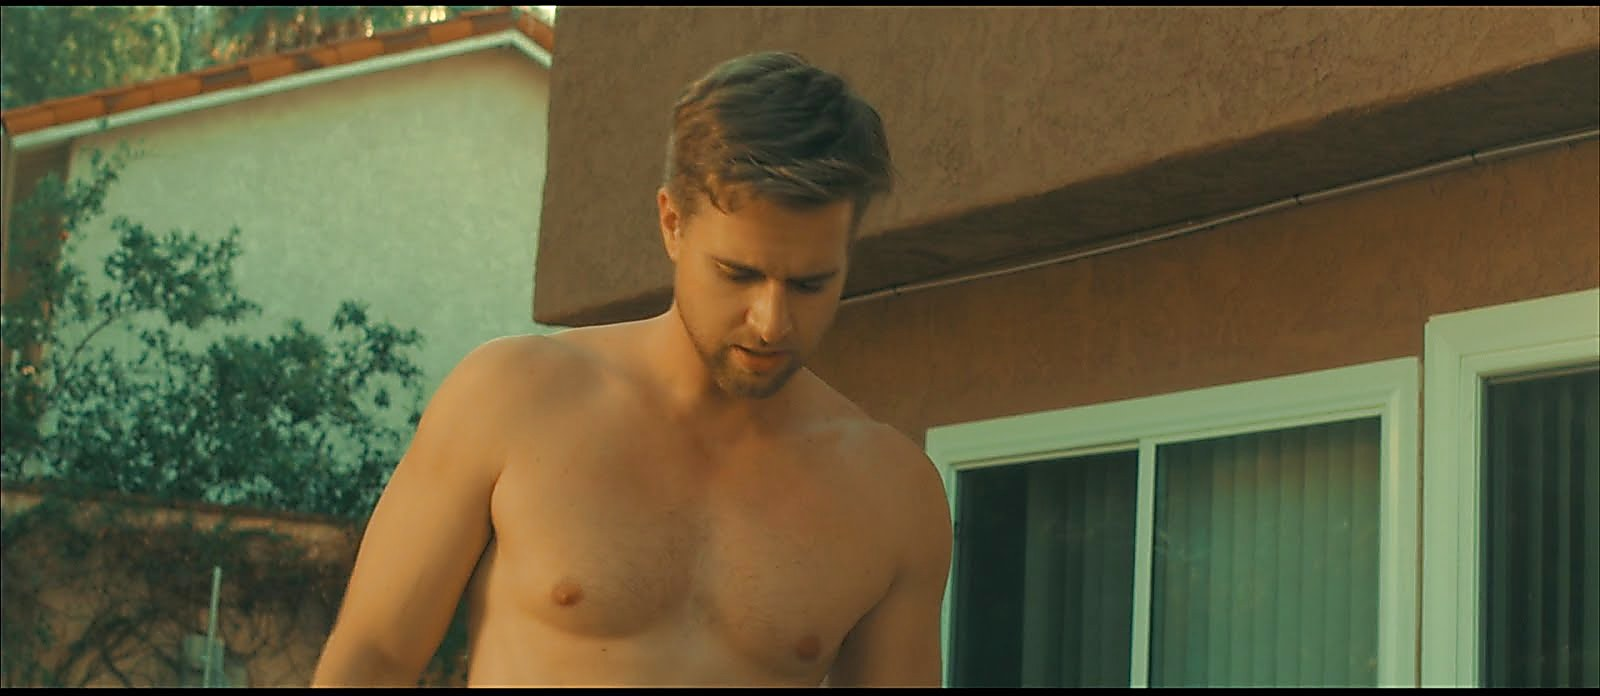 Randy Wayne sexy shirtless scene February 1, 2018, 11am